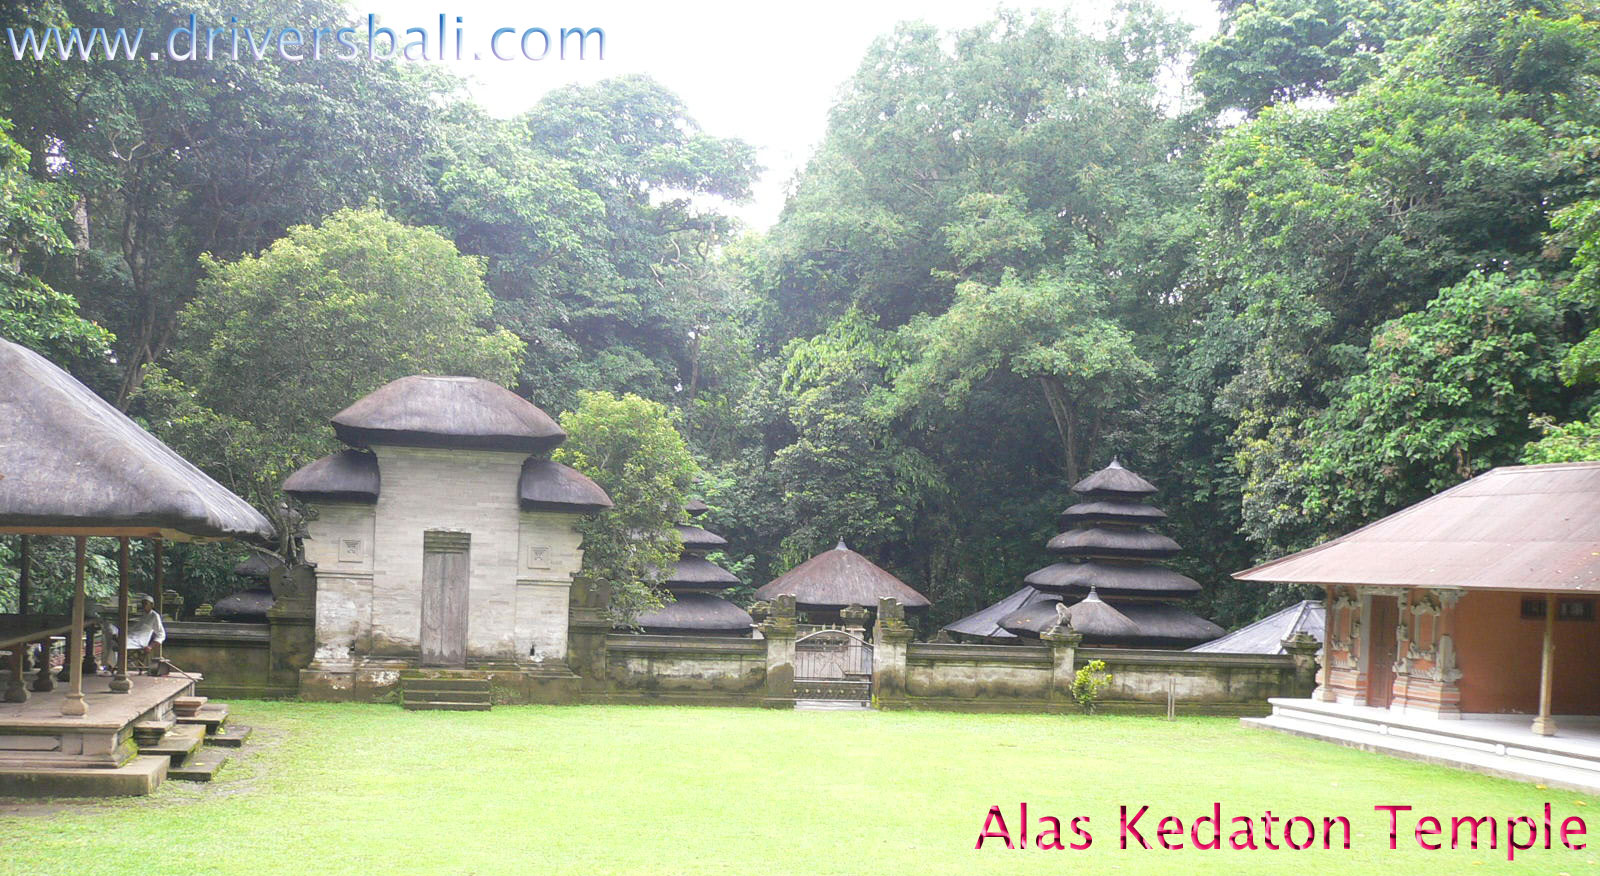 alas kedaton temple at kukuh village Bali